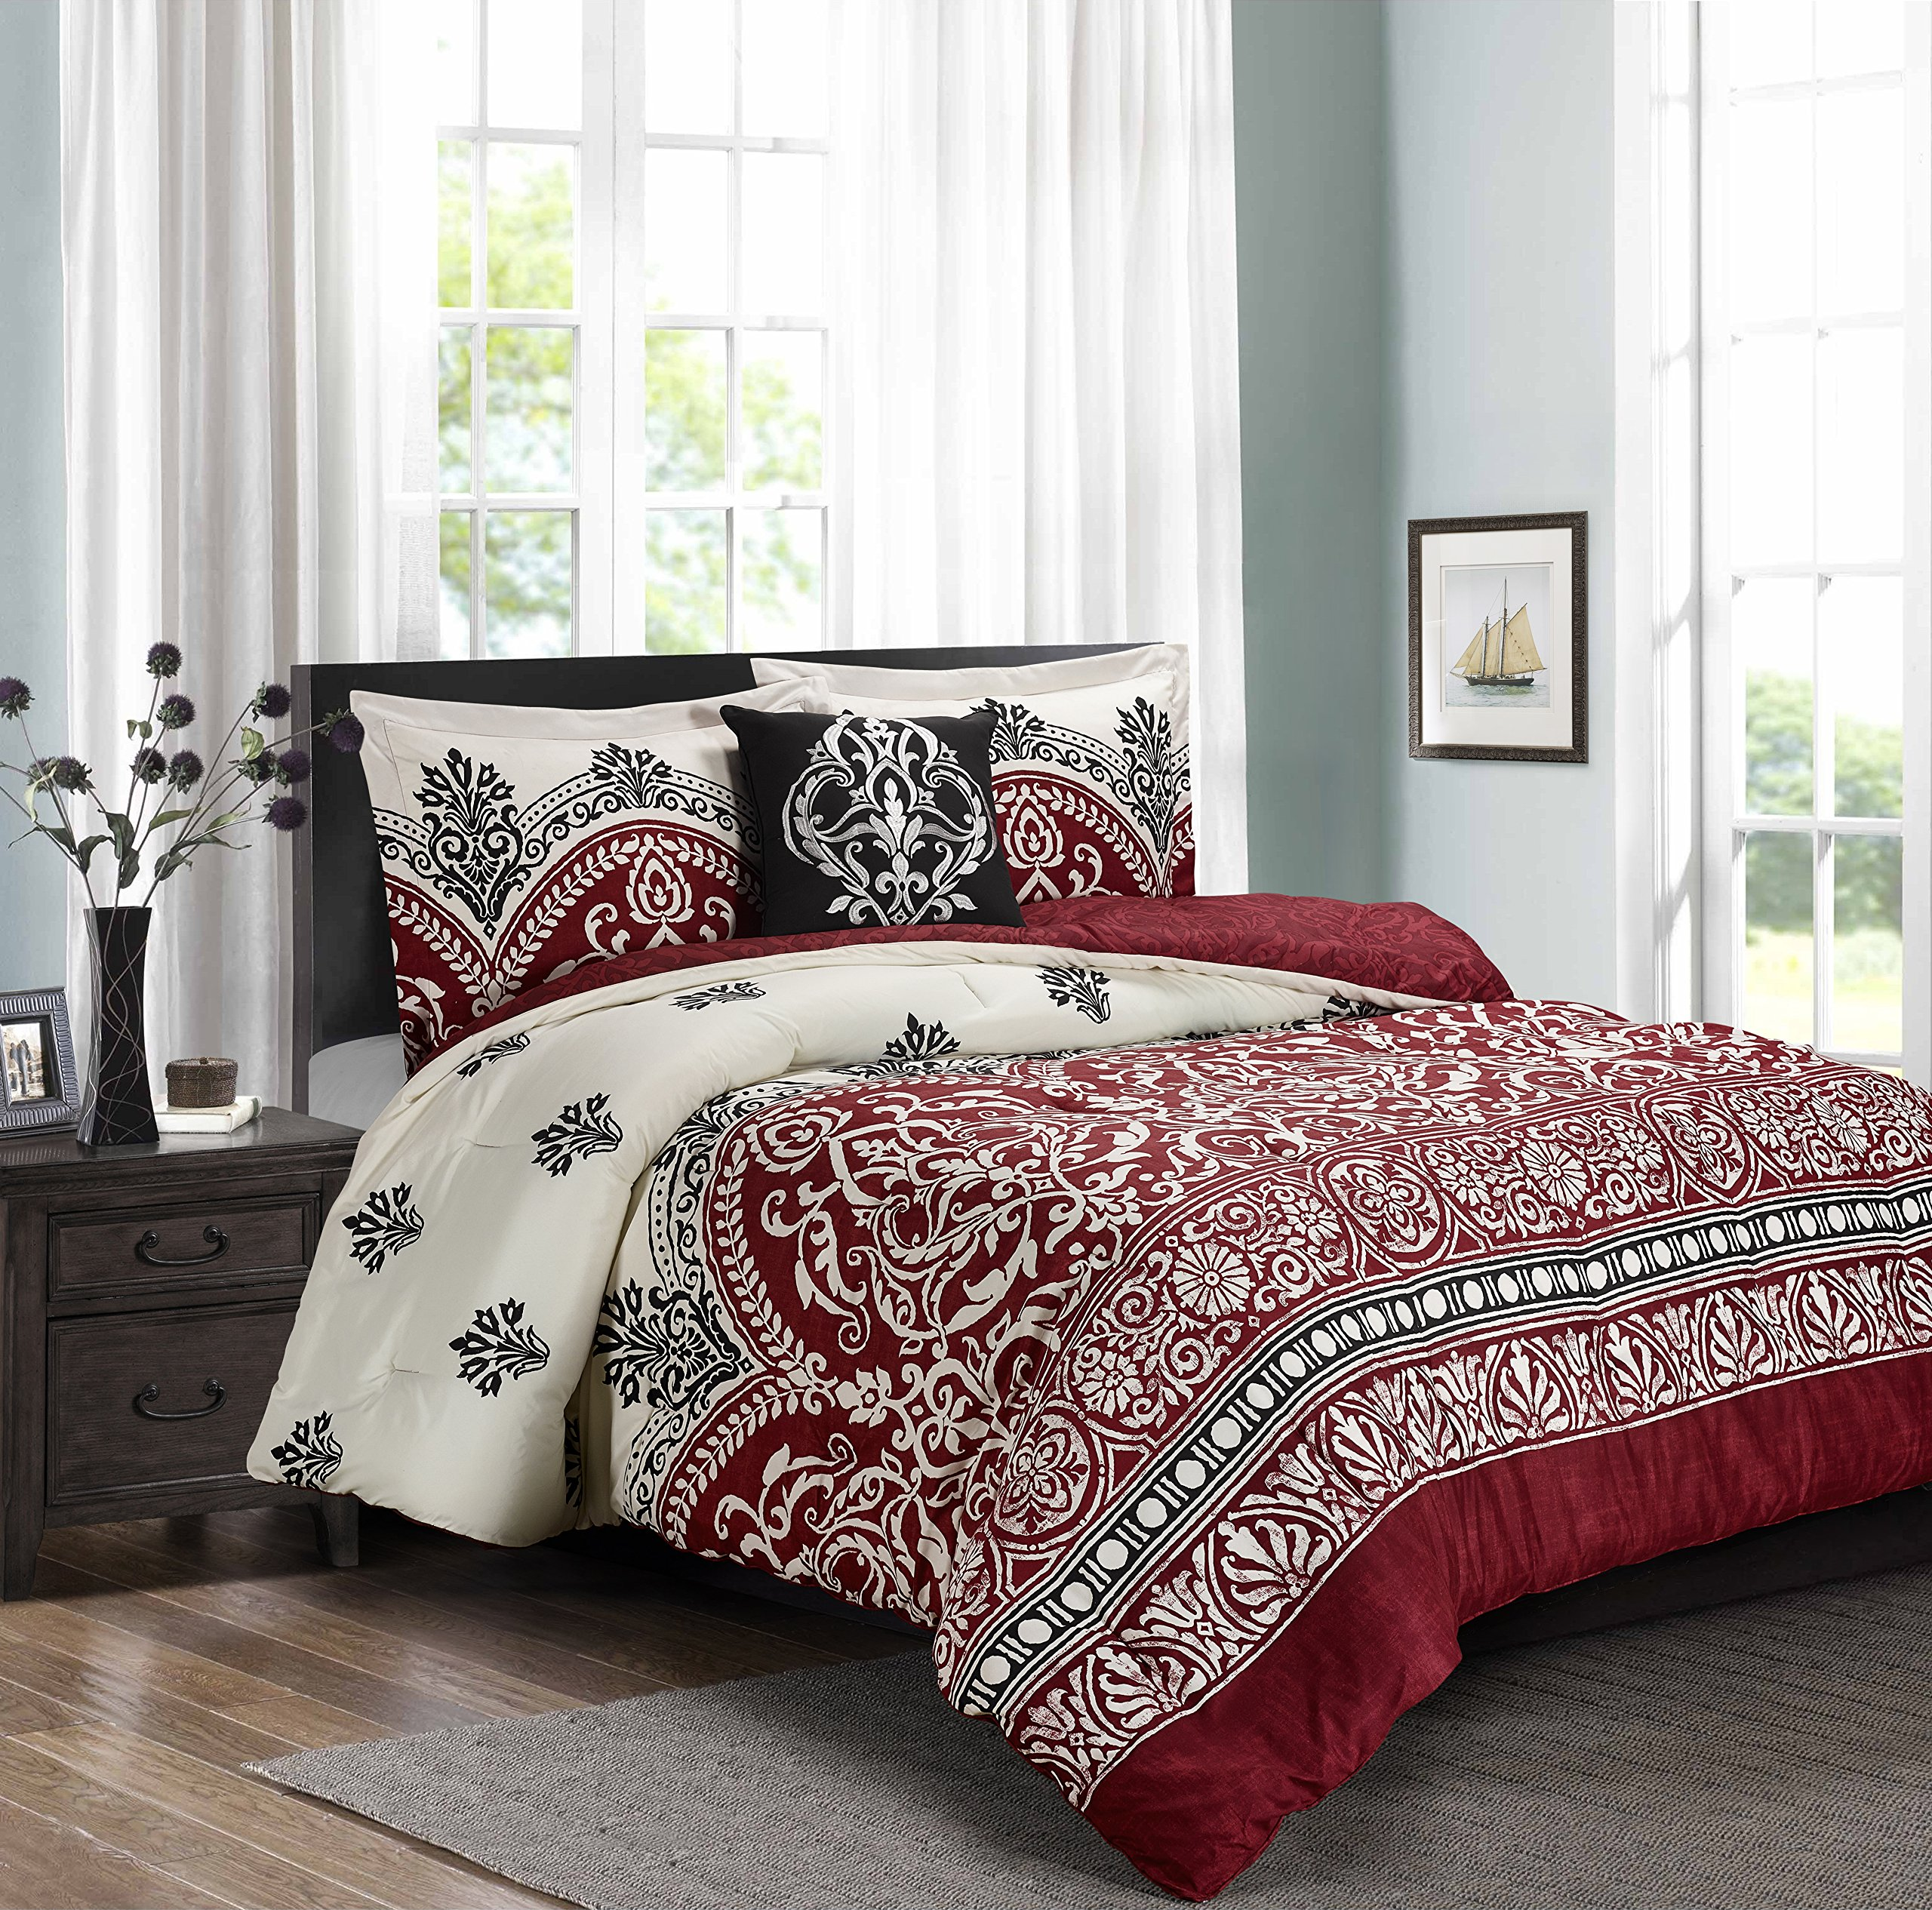 Pure Comfort Luxury Brushed Microfiber 4 Pieces Comforter Set, Queen, Chateau, 4 by Pure Comfort (Image #1)